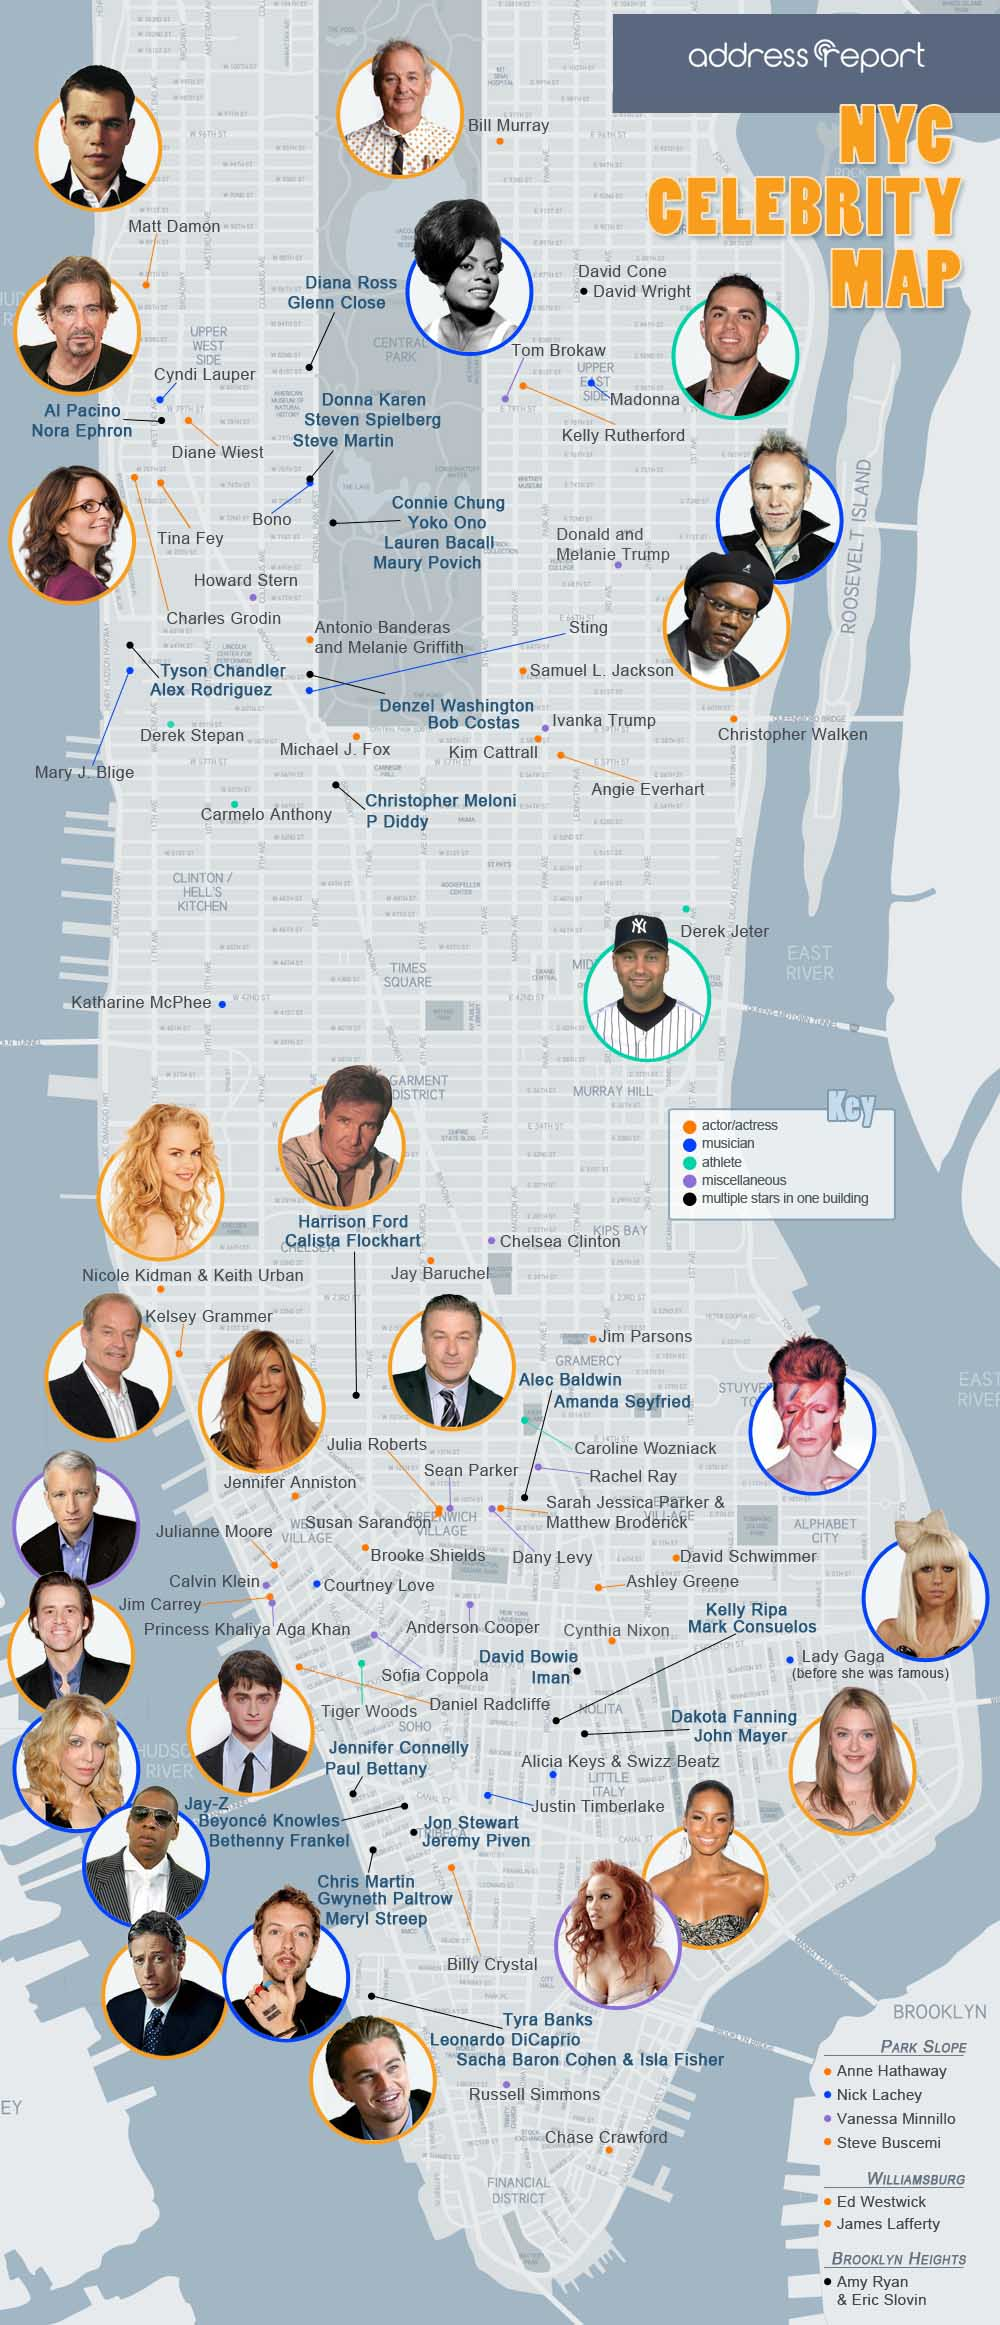 NYC Celebrity Star Map 2012 by Address Report